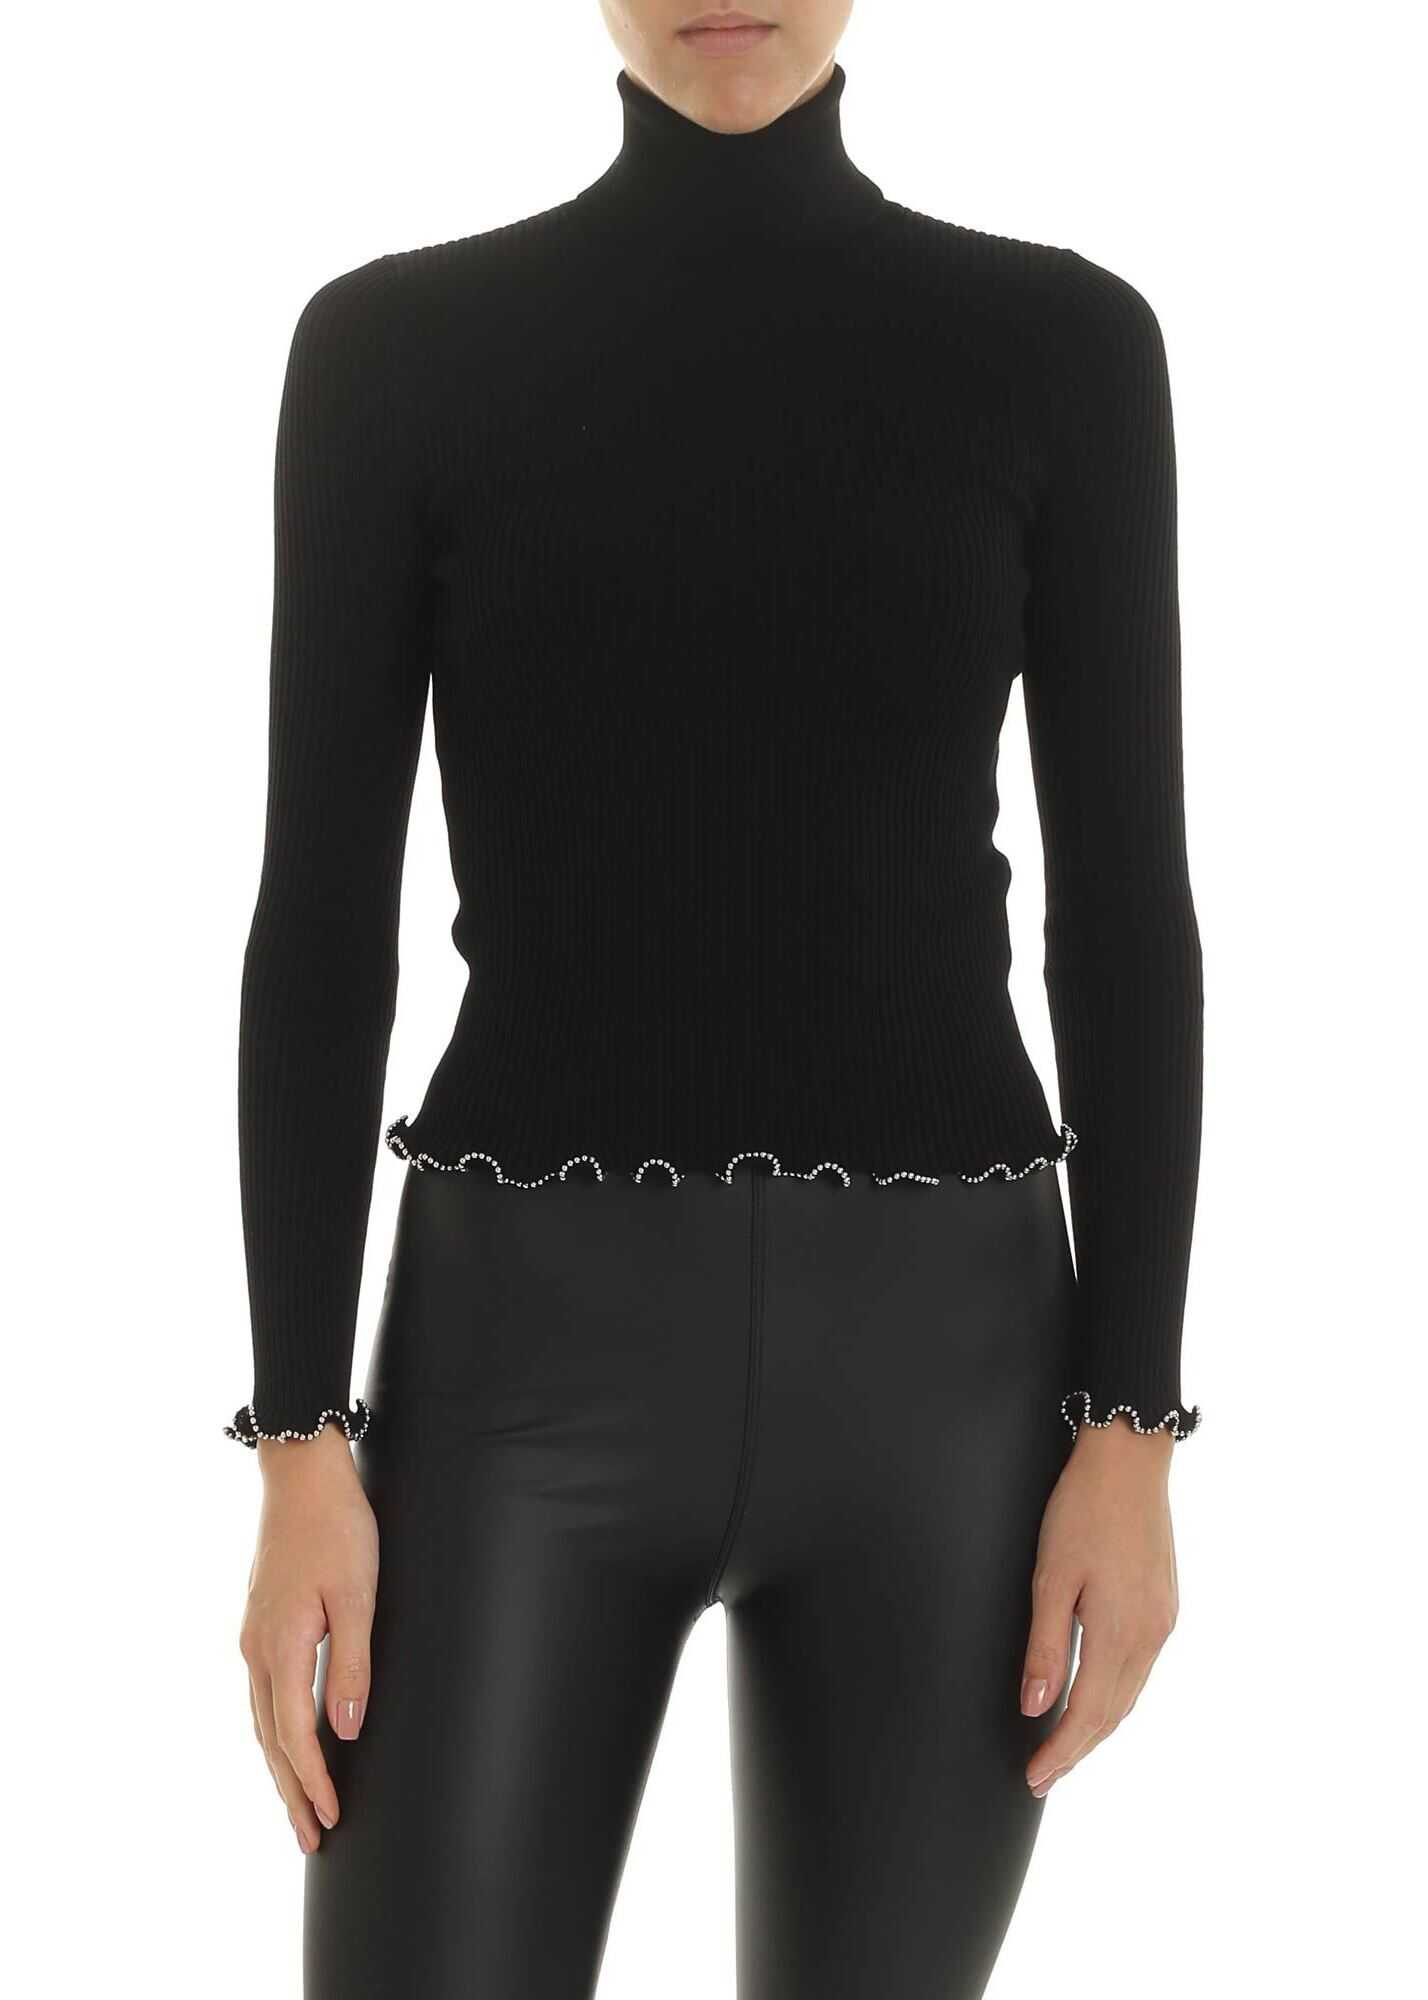 Alexander Wang Black Ribbed Turtleneck With Silver Beads Black